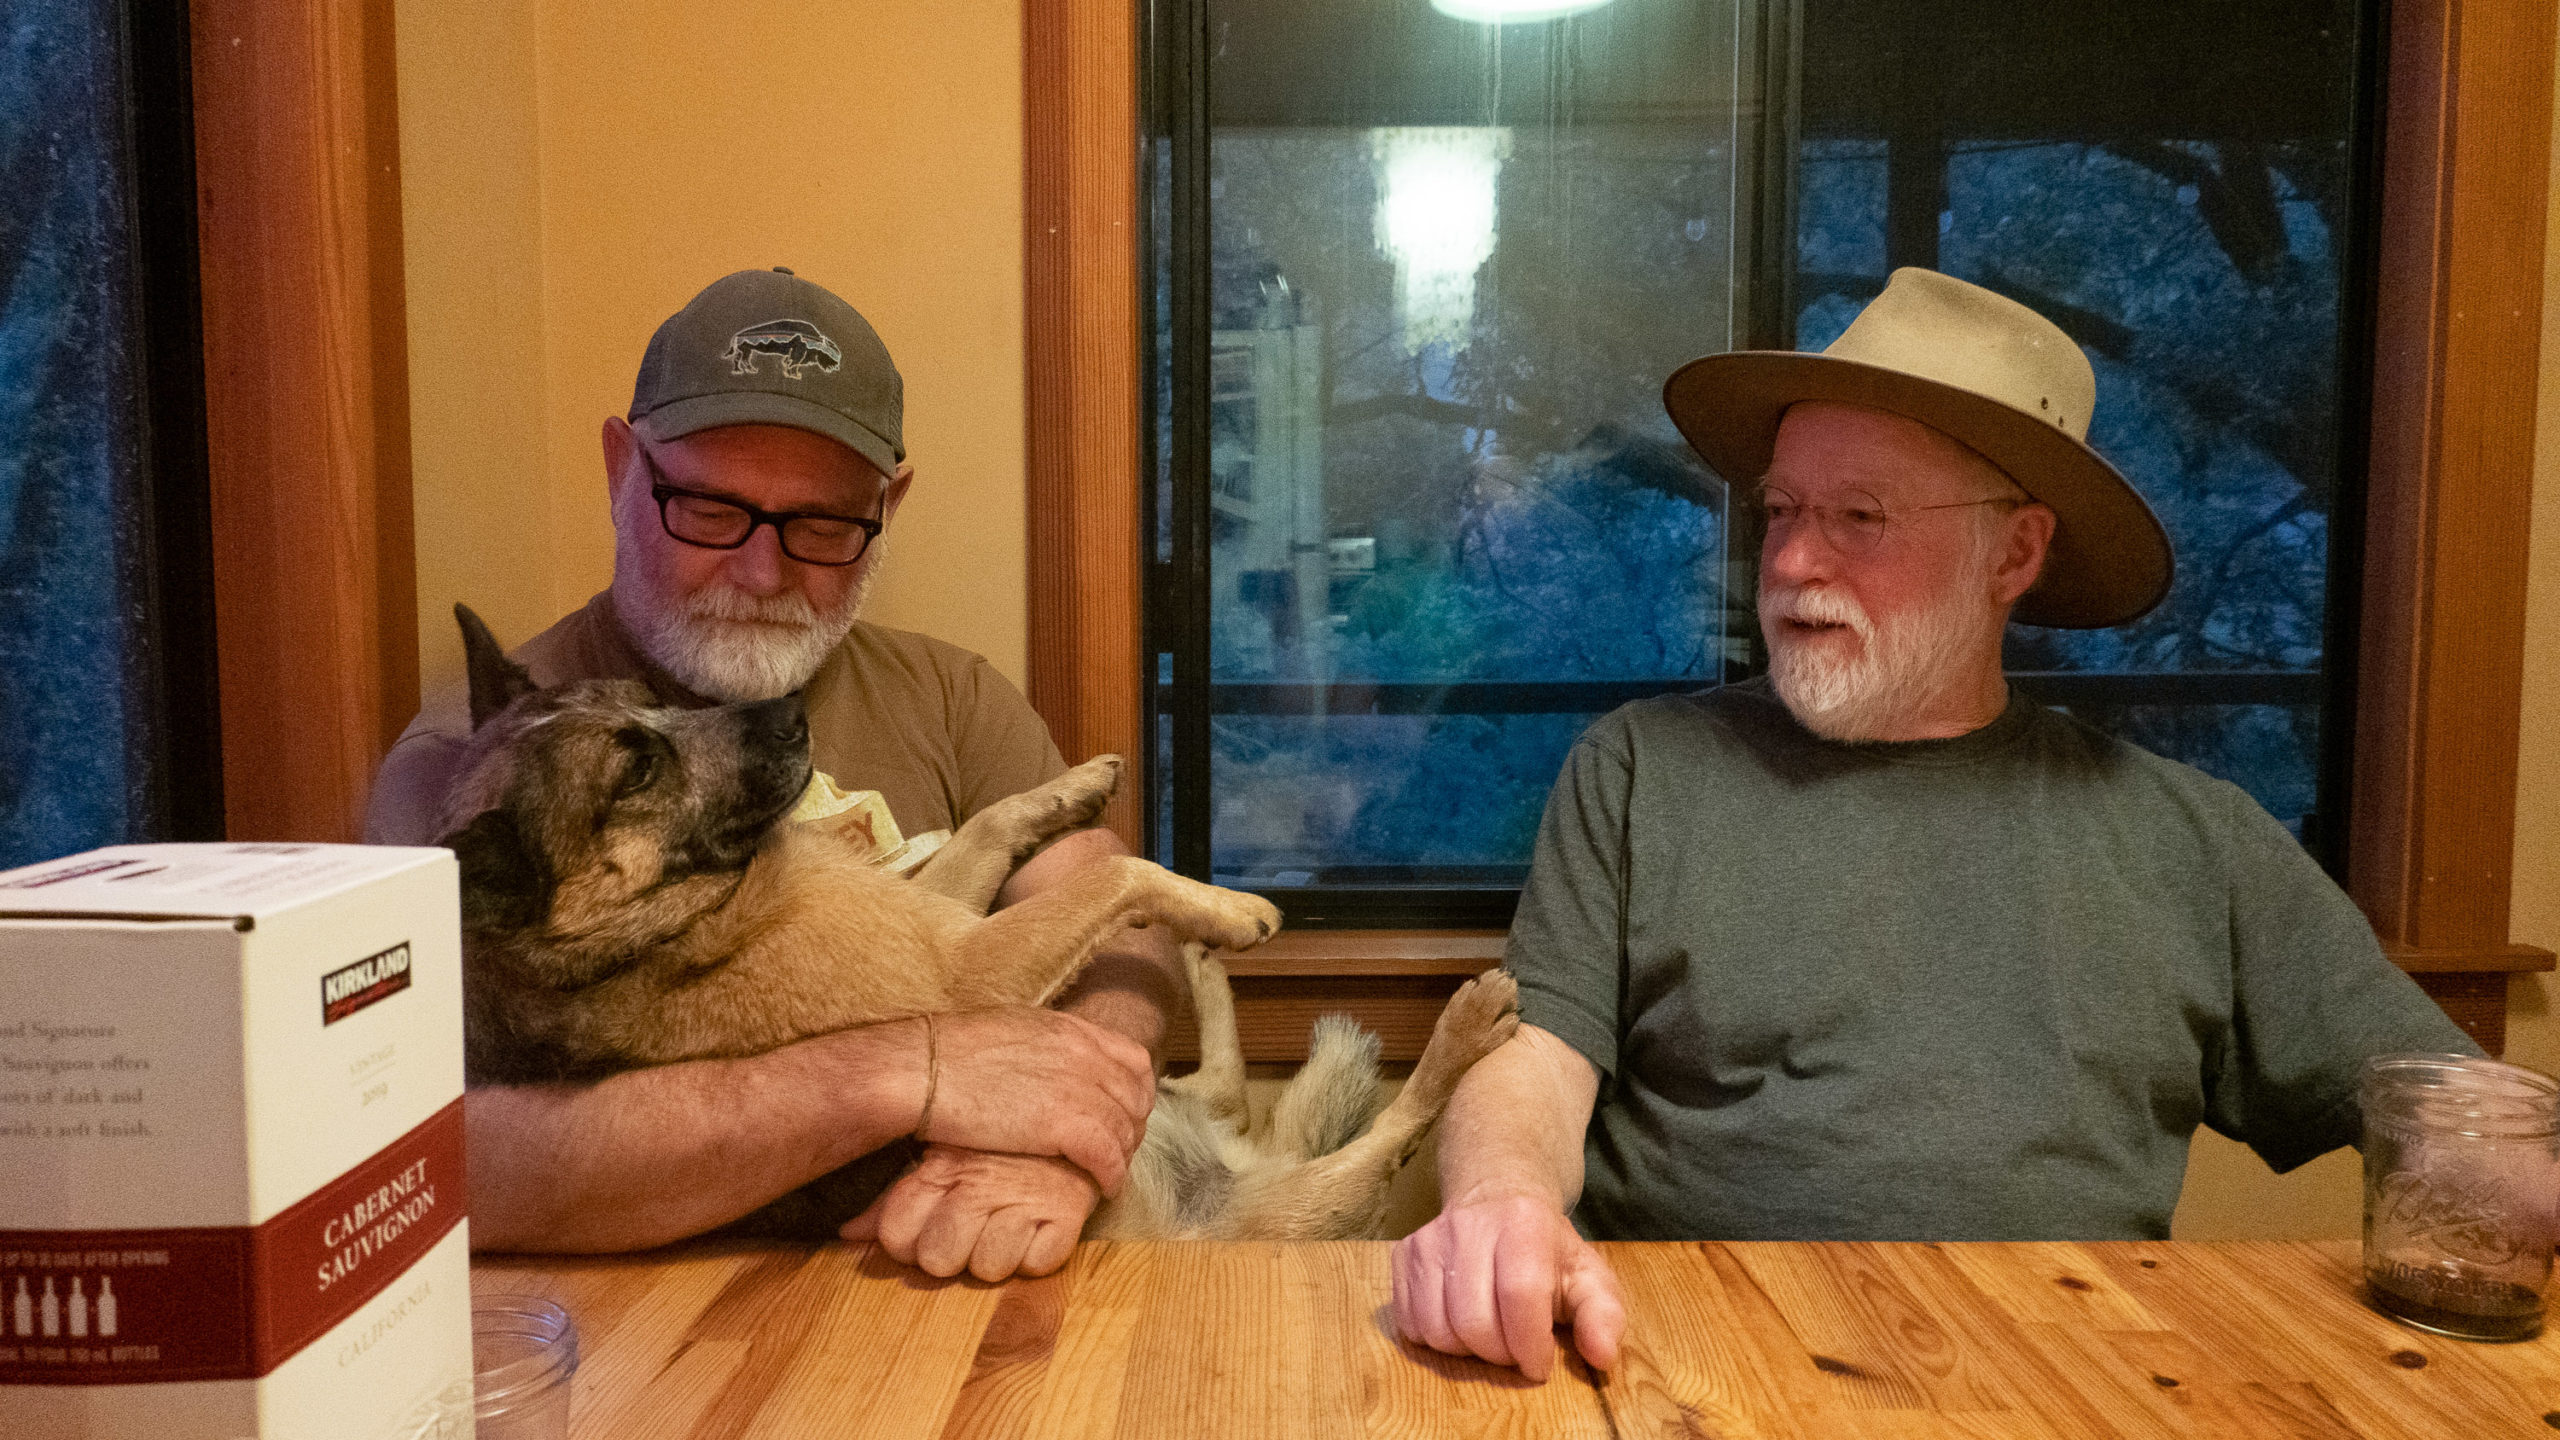 A man holds a dog while another man looks toward them